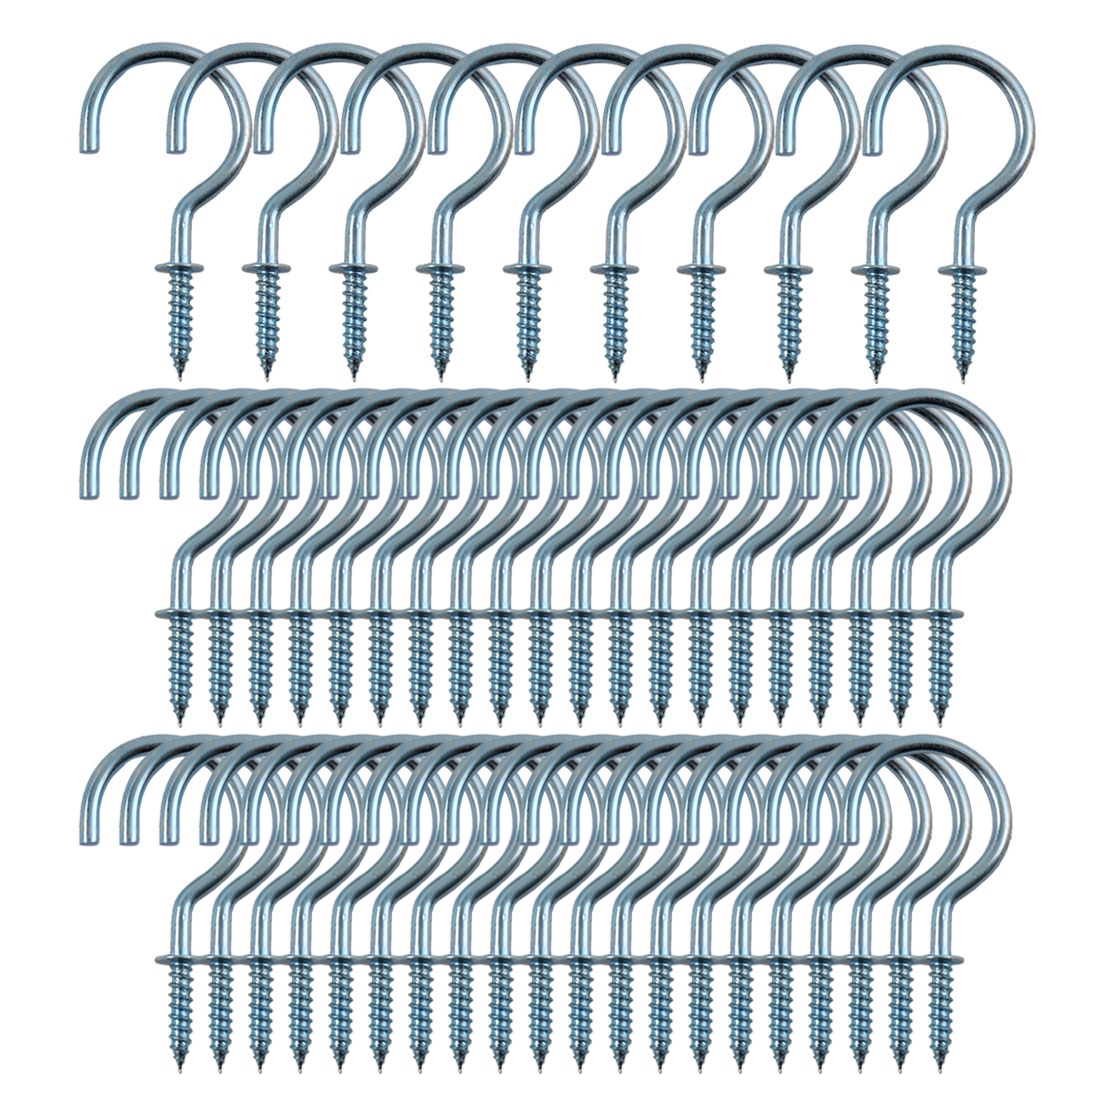 50pcs Cup Ceiling Hooks 3/4 Inch Zinc Plating Screw Holder Blue